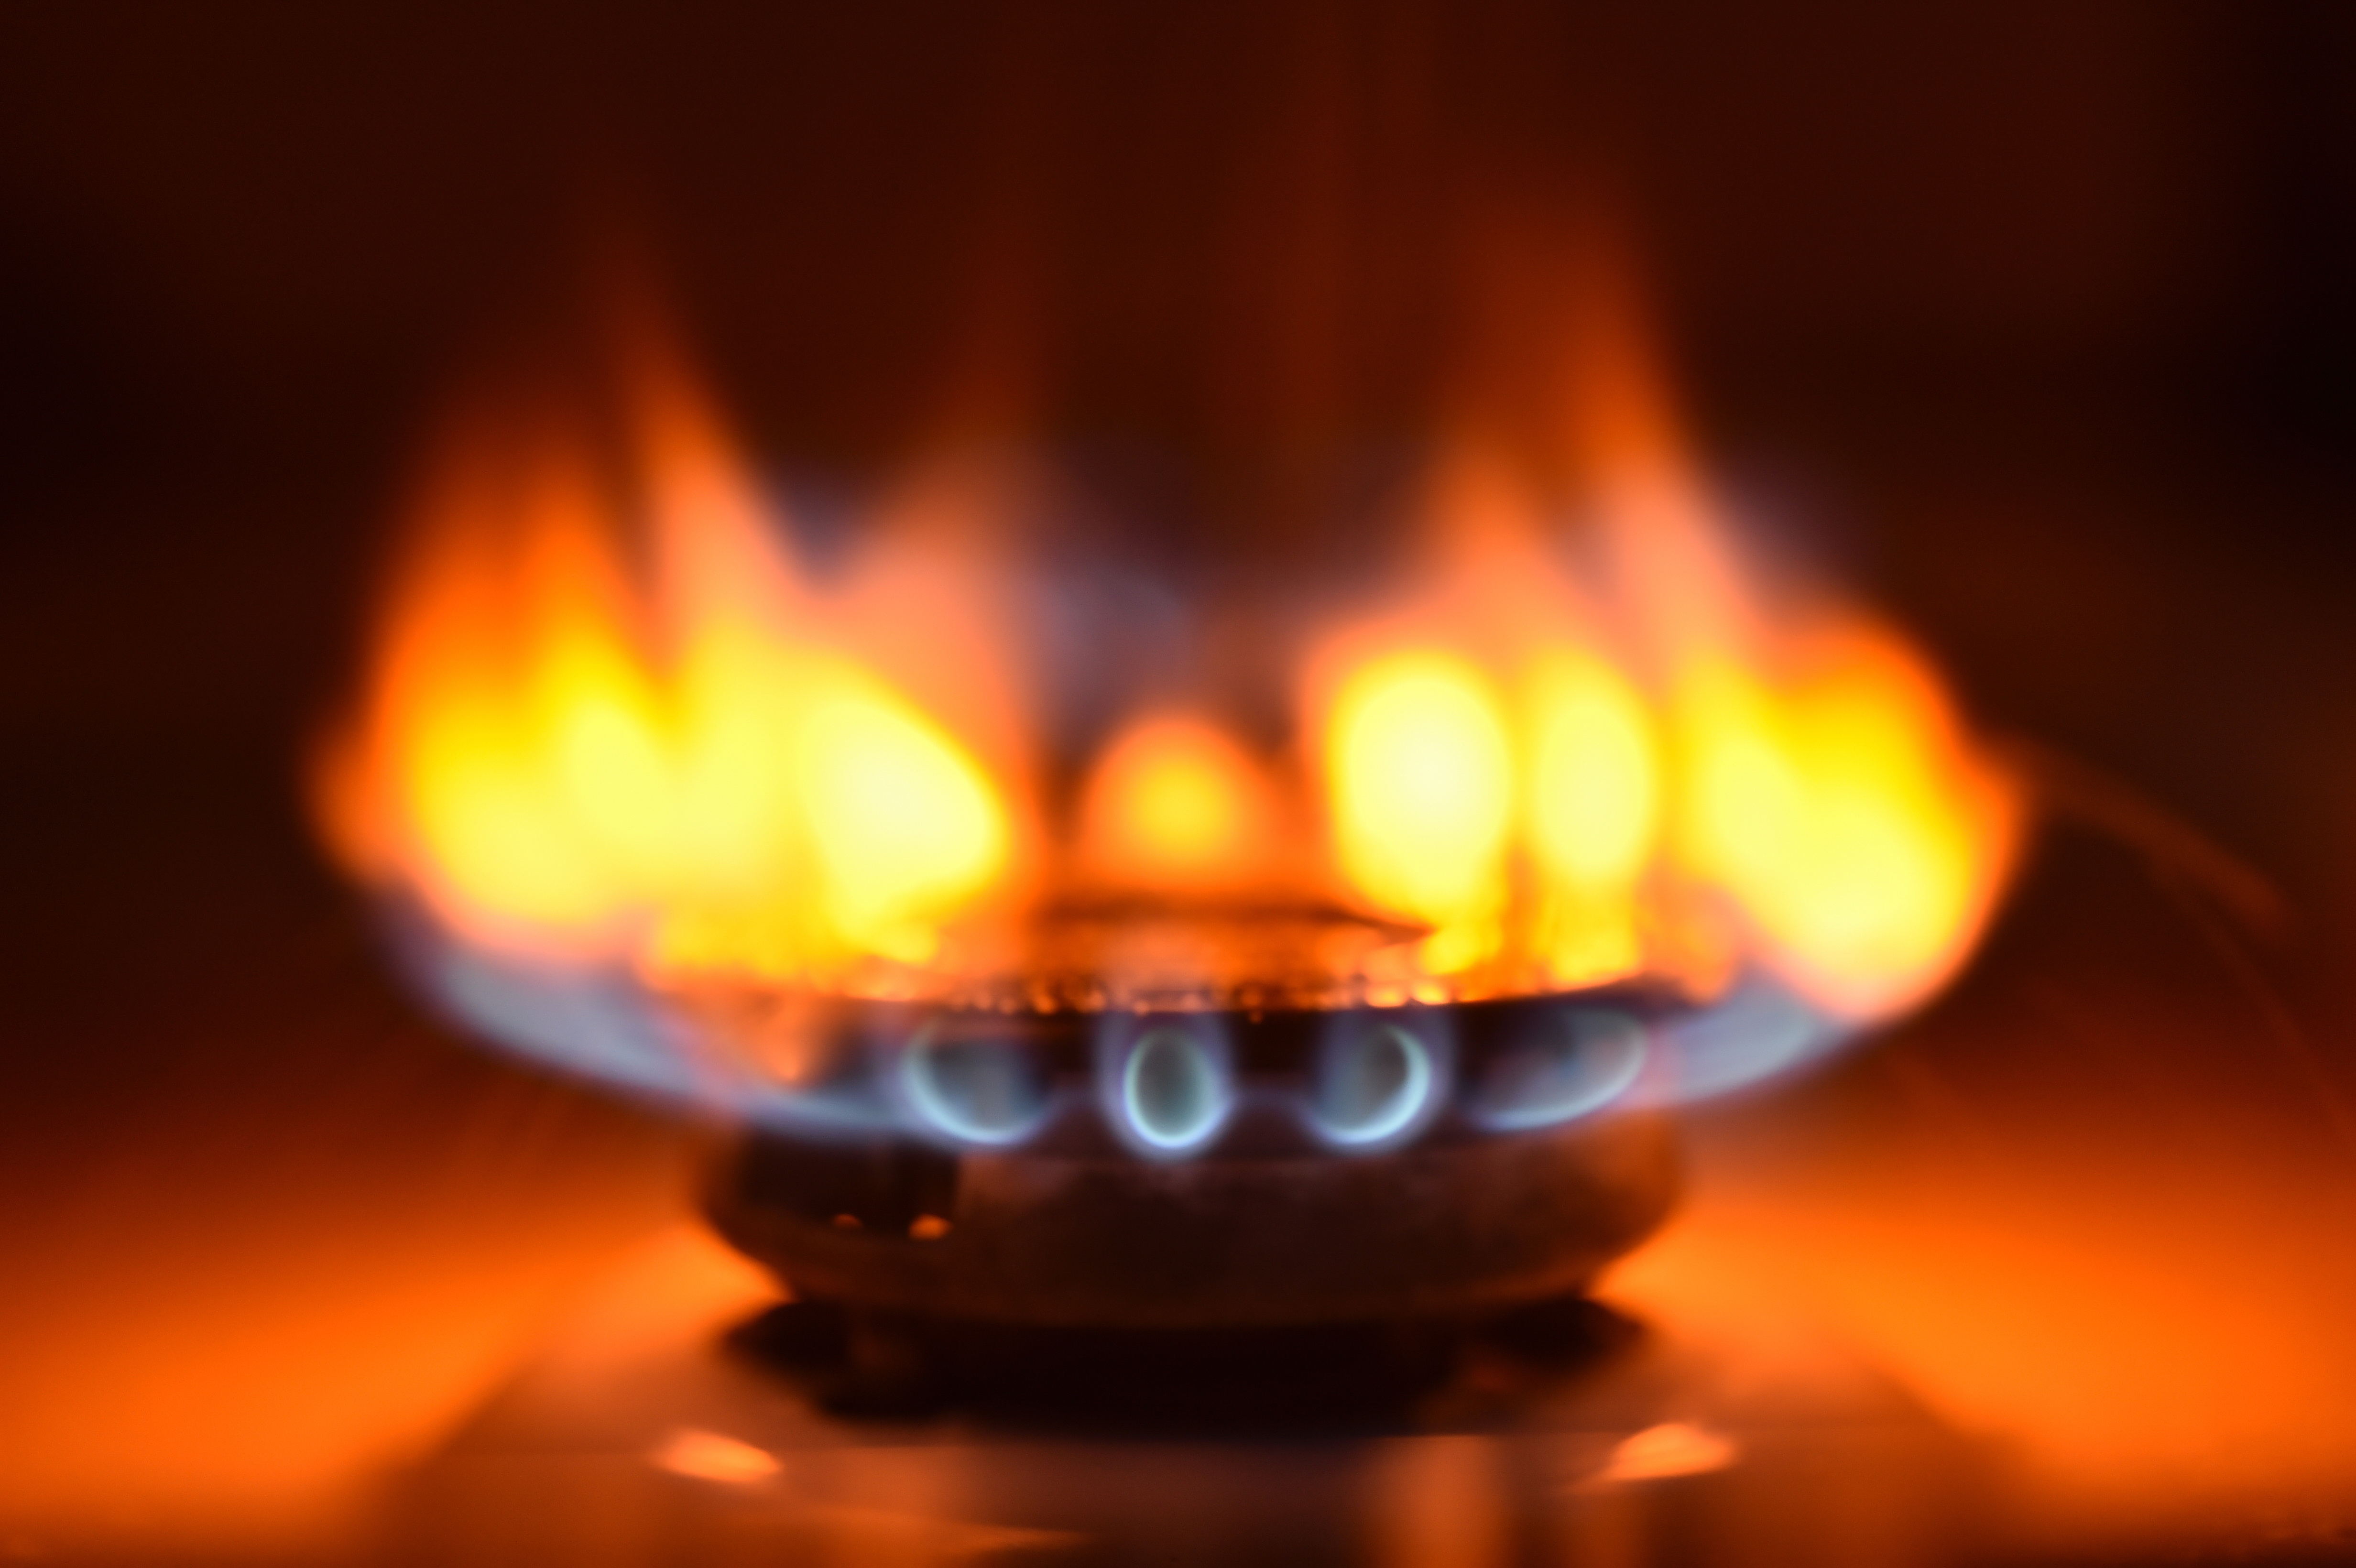 Natural Gas Poisoning From Stove